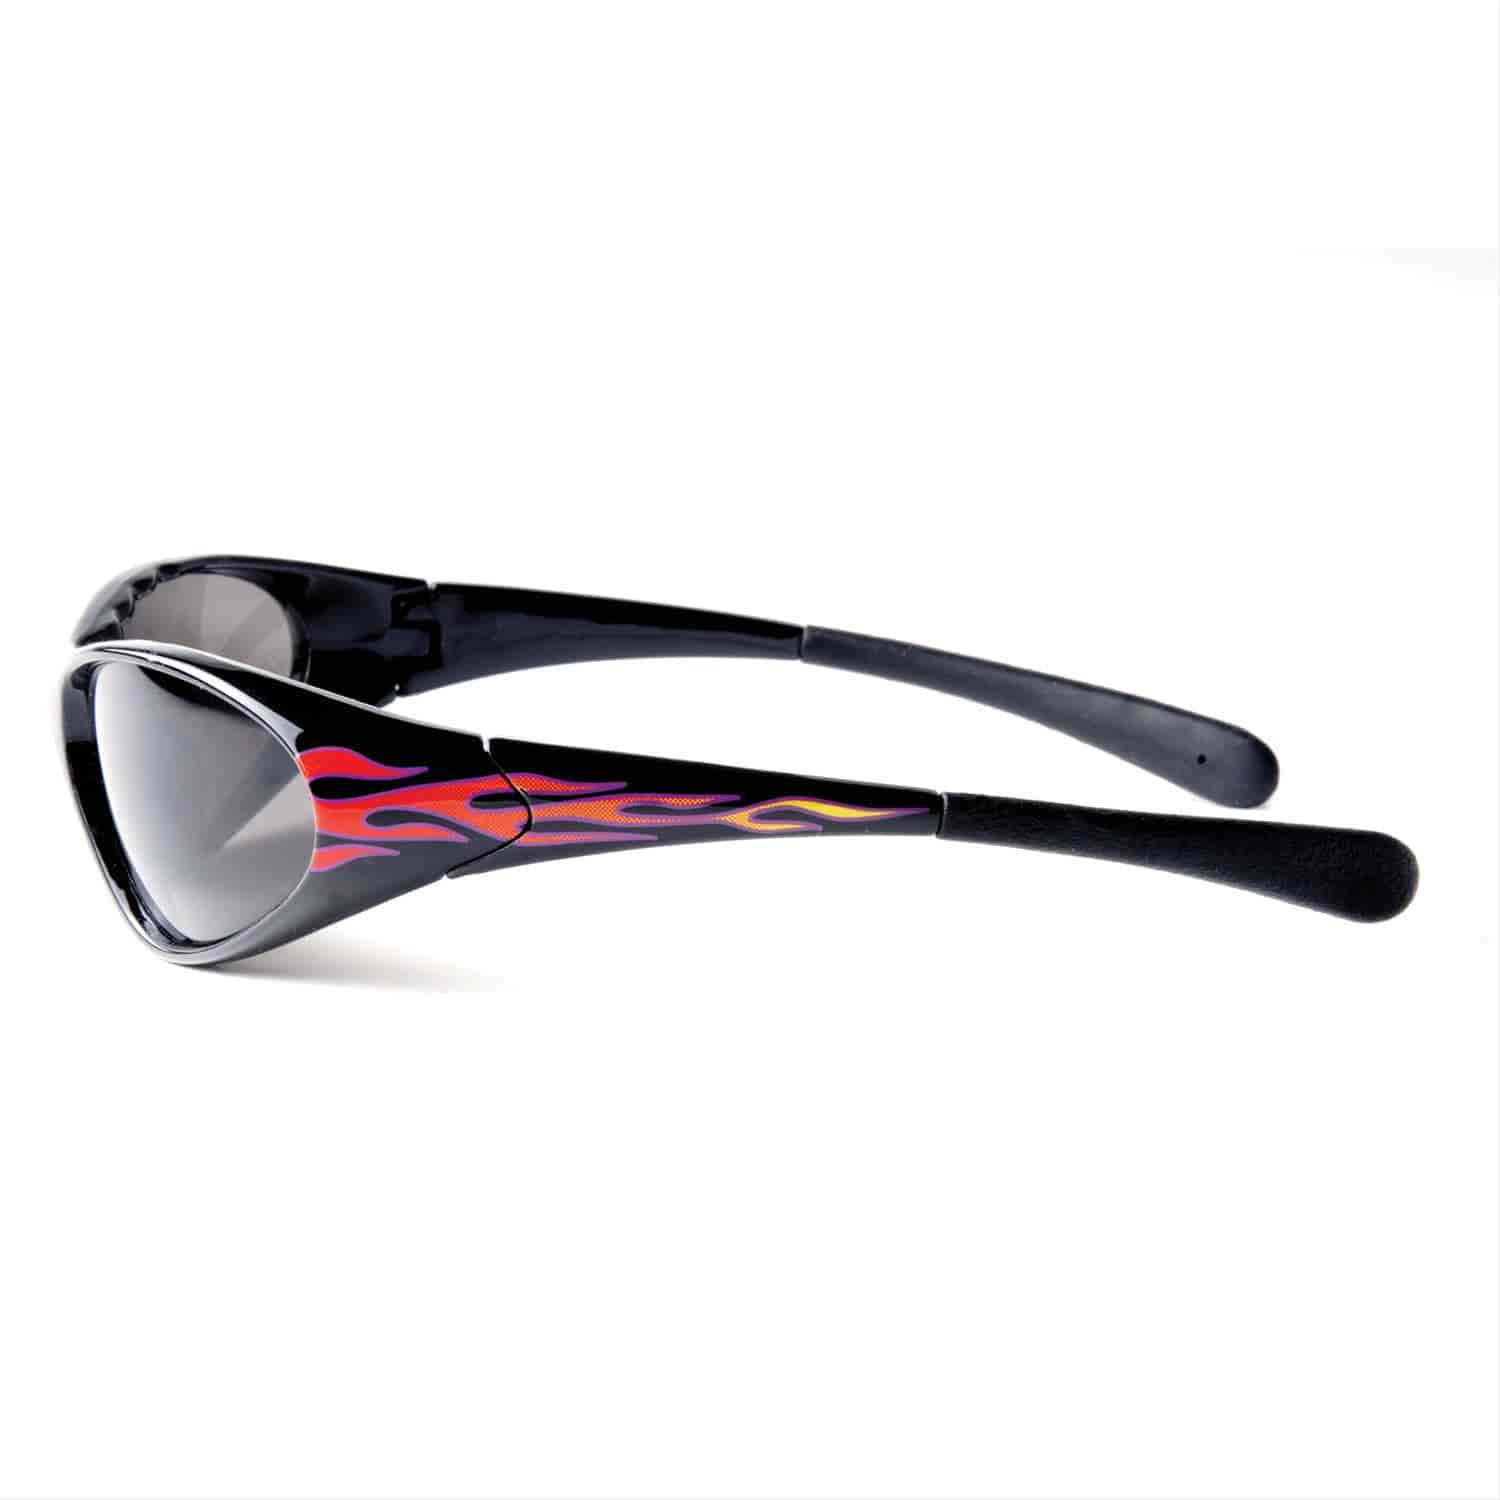 DEI 070202 - DEI Racing Theme Sunglasses